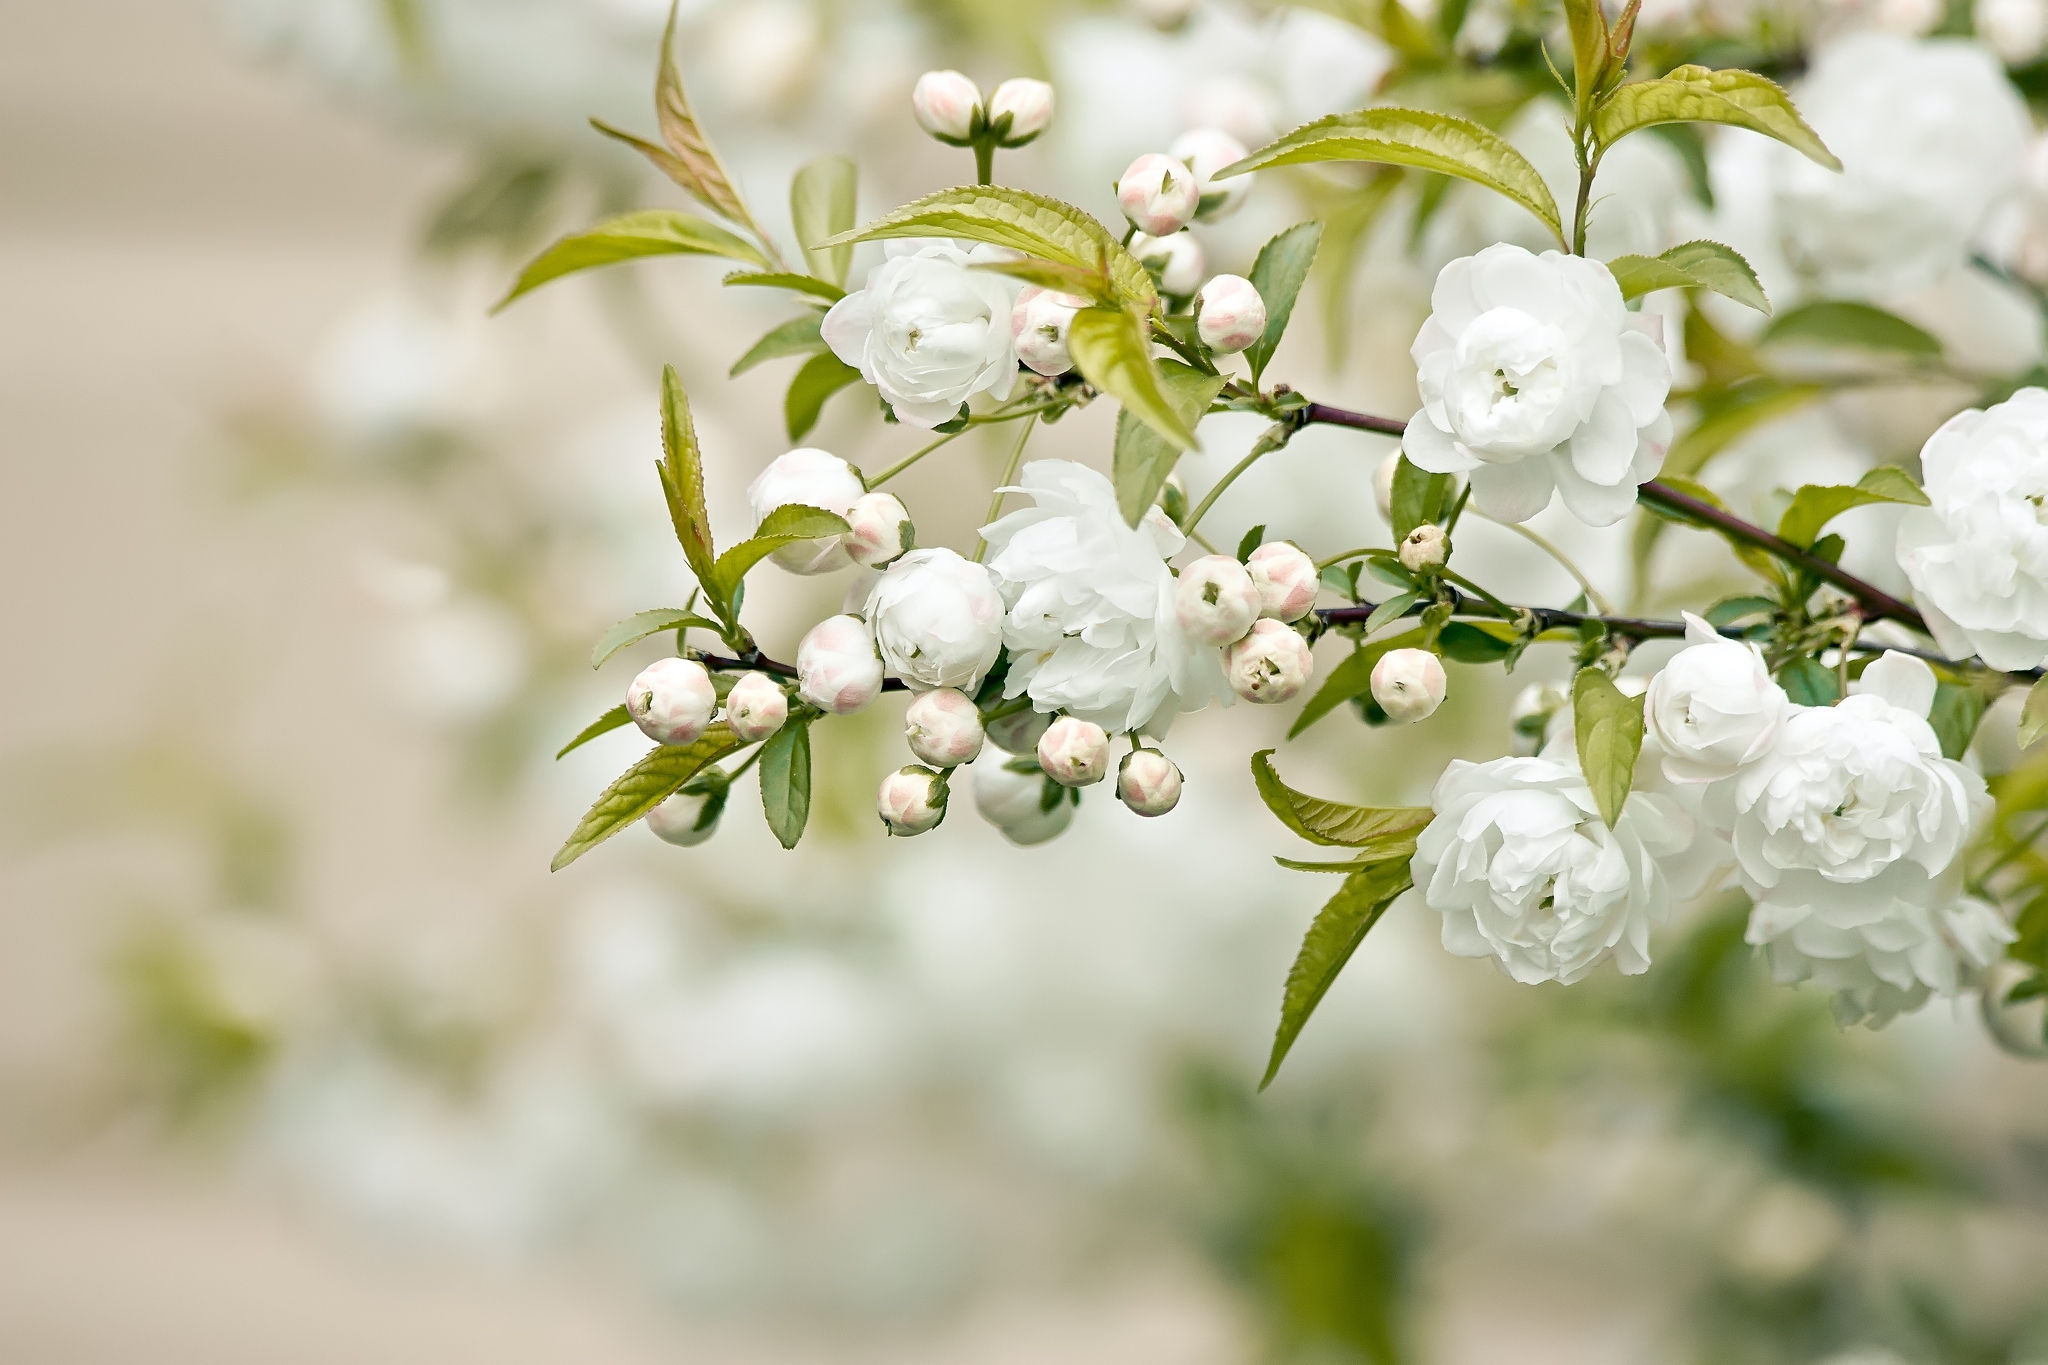 White Flowers On Branches